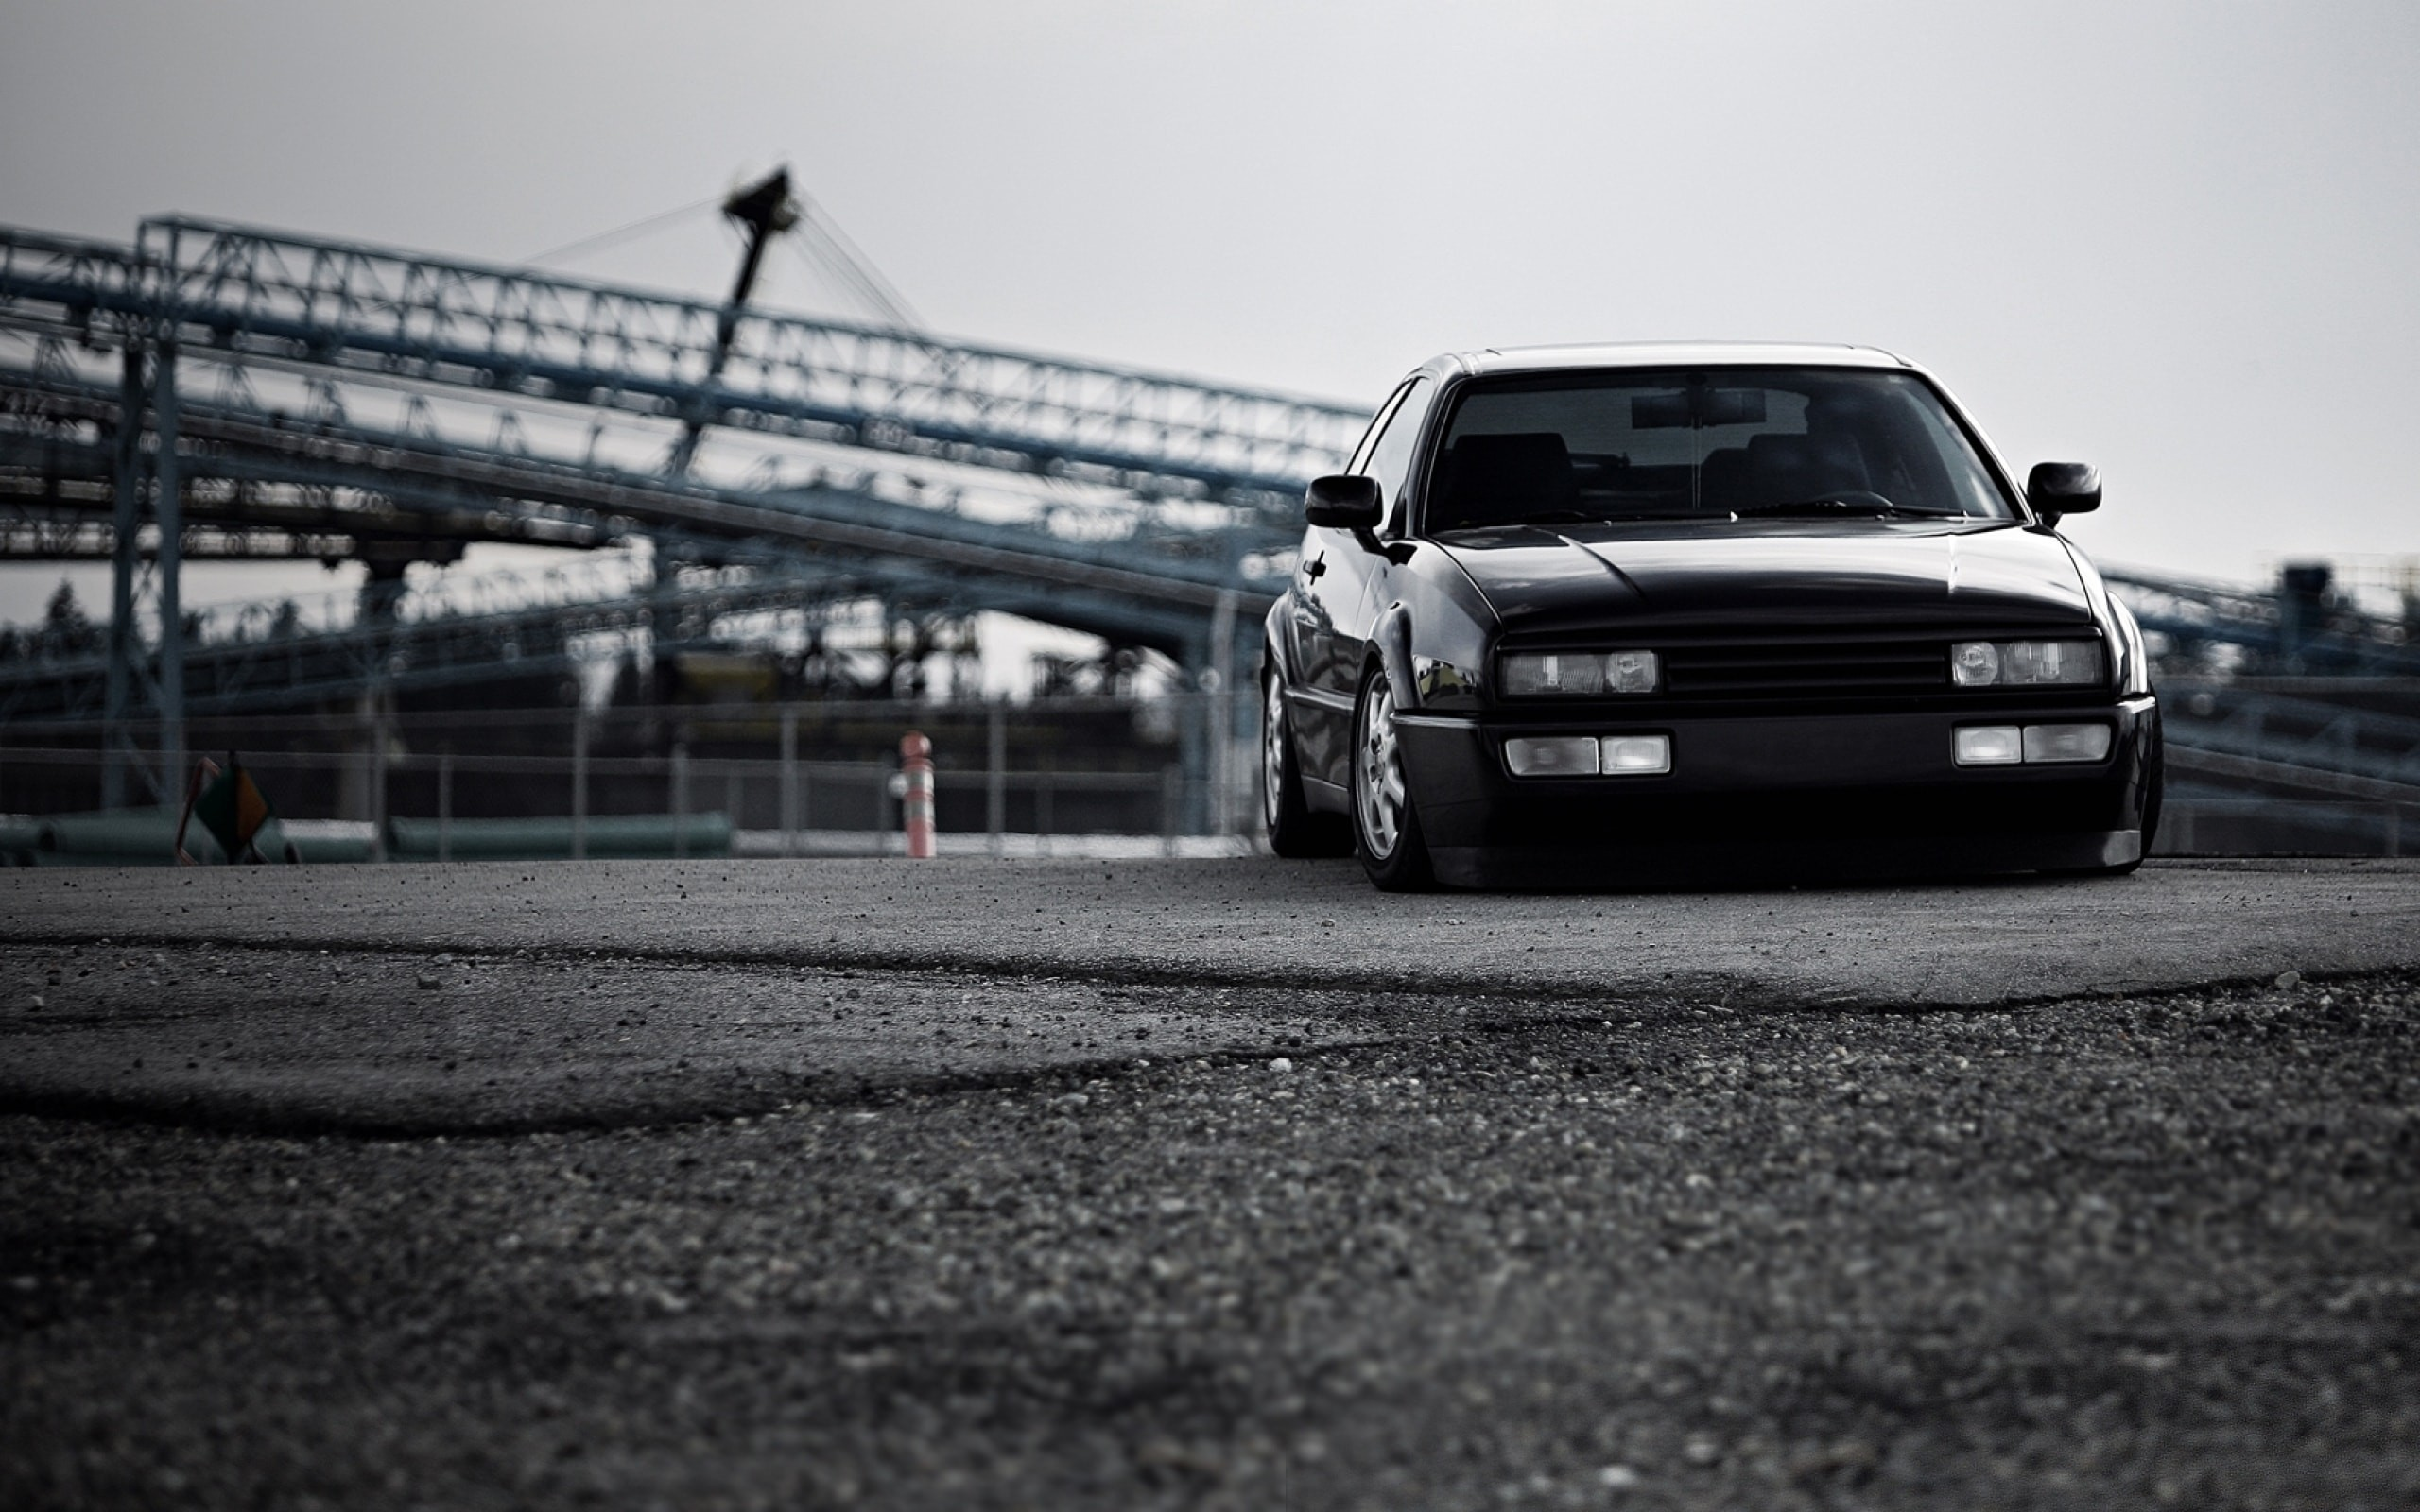 Res: 2560x1600, Volkswagen Corrado Wallpapers Volkswagen Corrado widescreen wallpapers